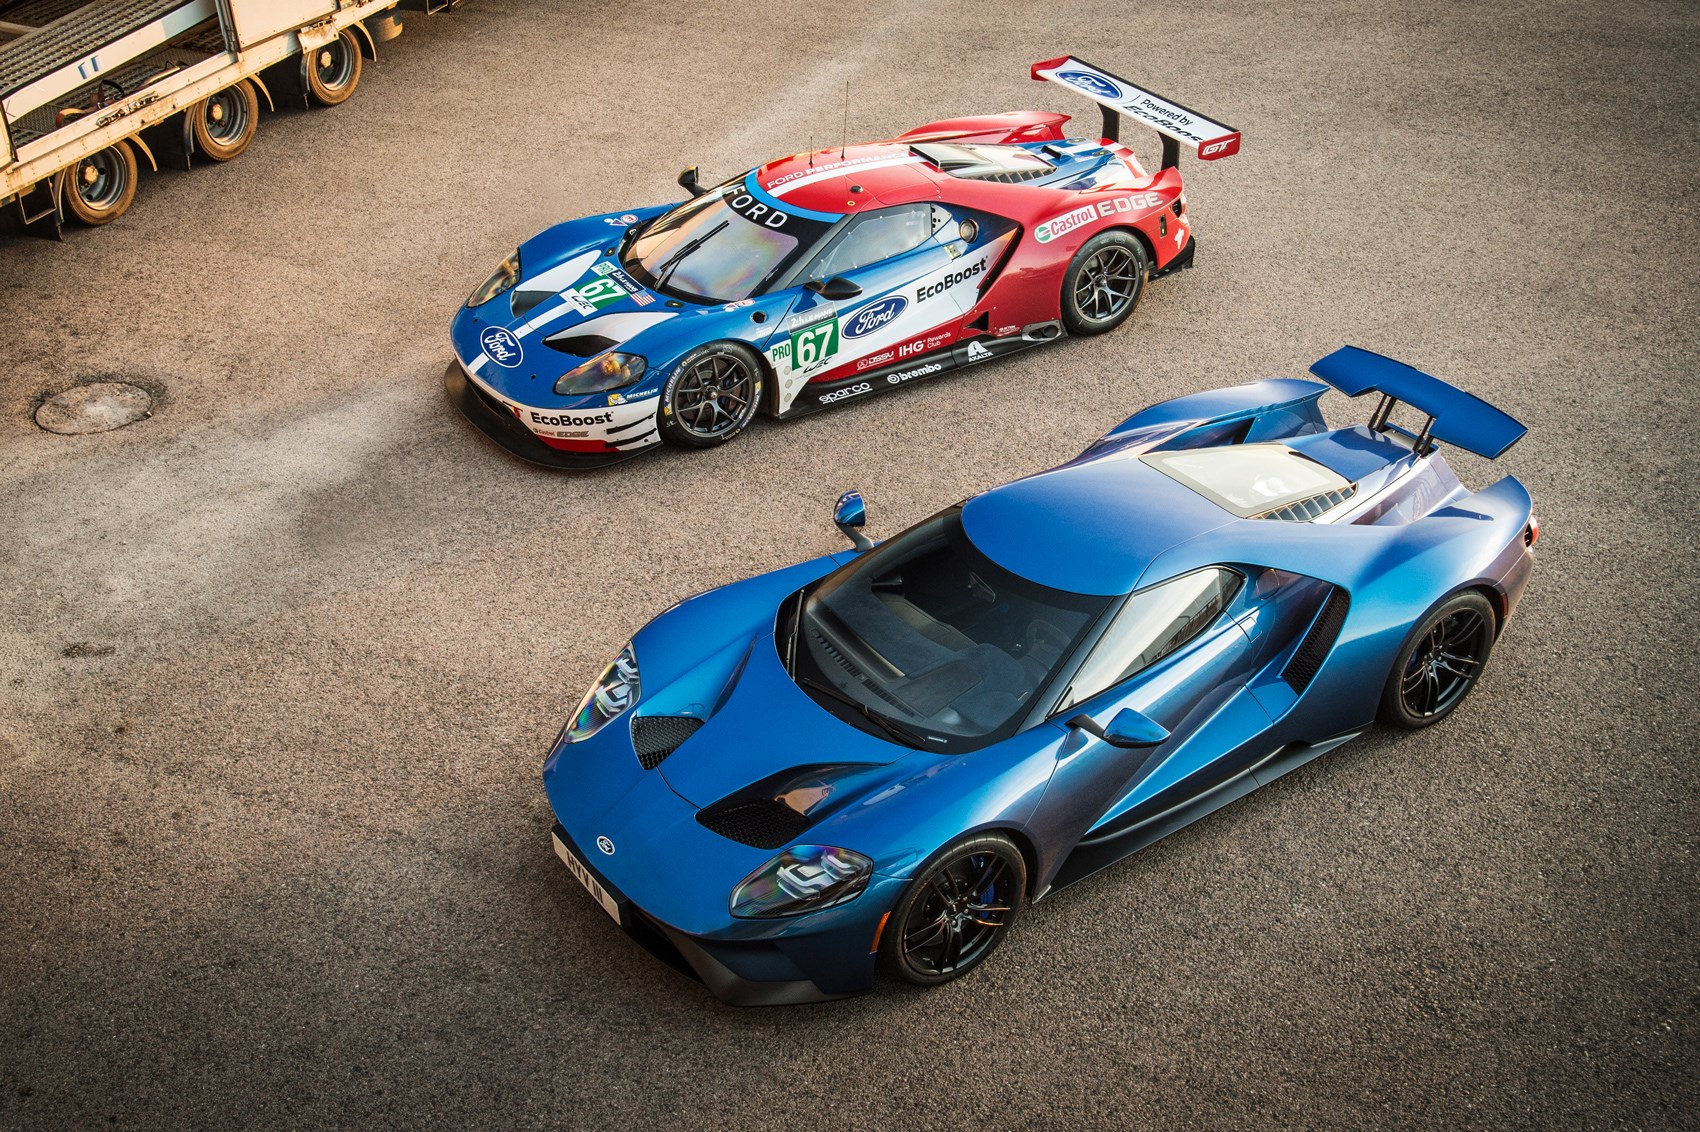 Race Cars For Sale >> Day of reckoning: Ford GT road car vs GTE LM racer | CAR